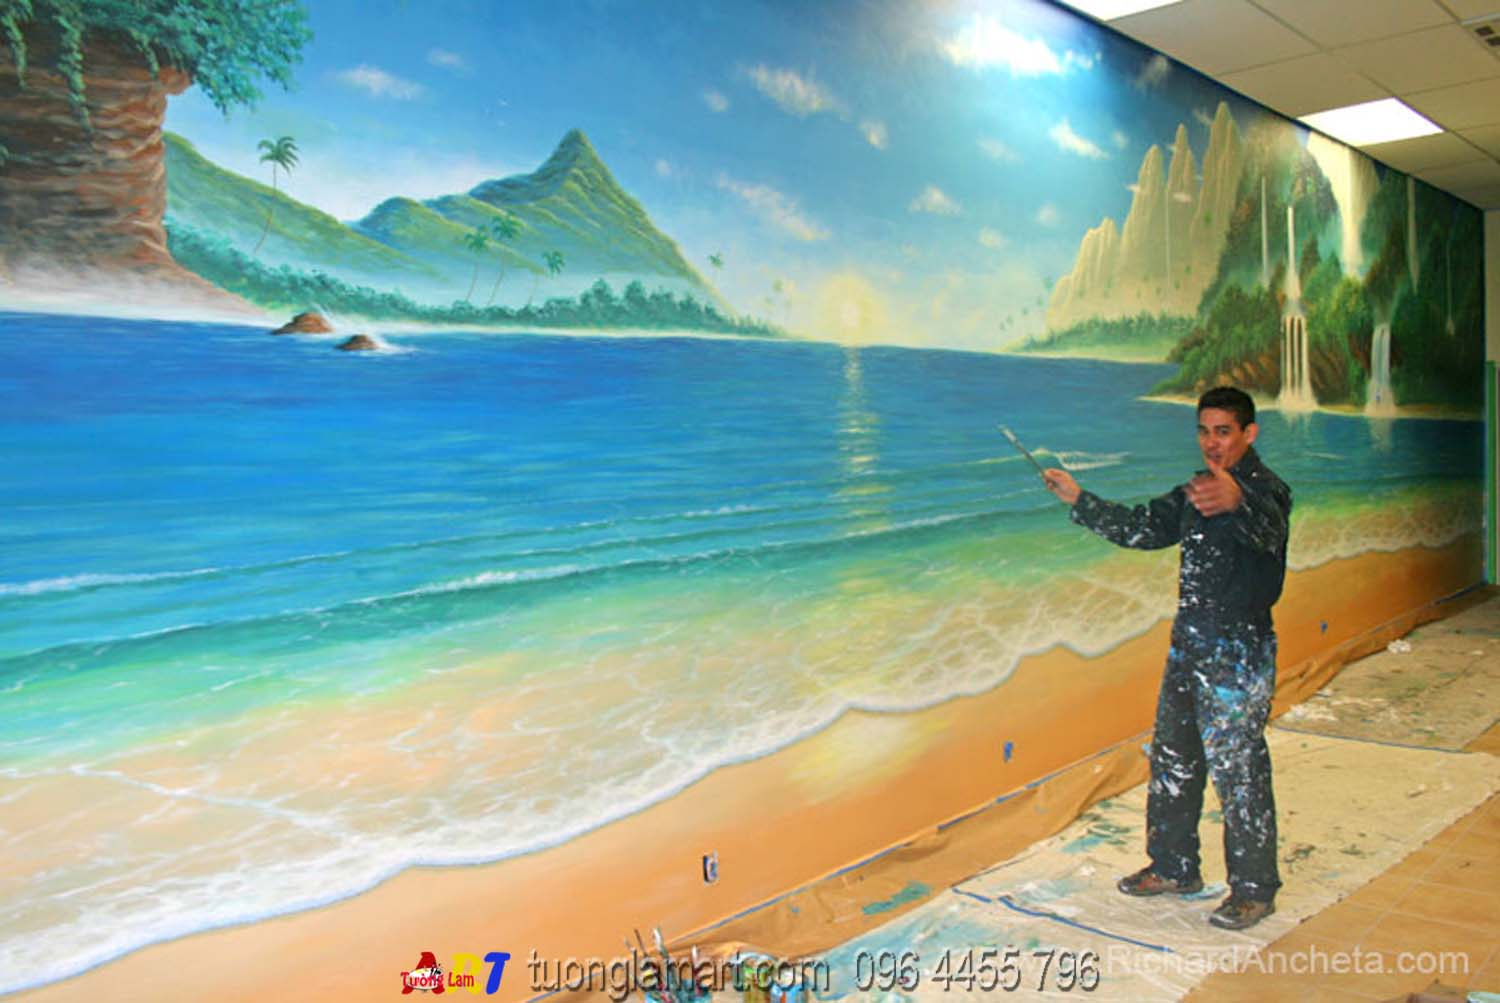 Nh ng m u v tranh t ng phong c nh bi n p nh th t for Airbrush mural painting